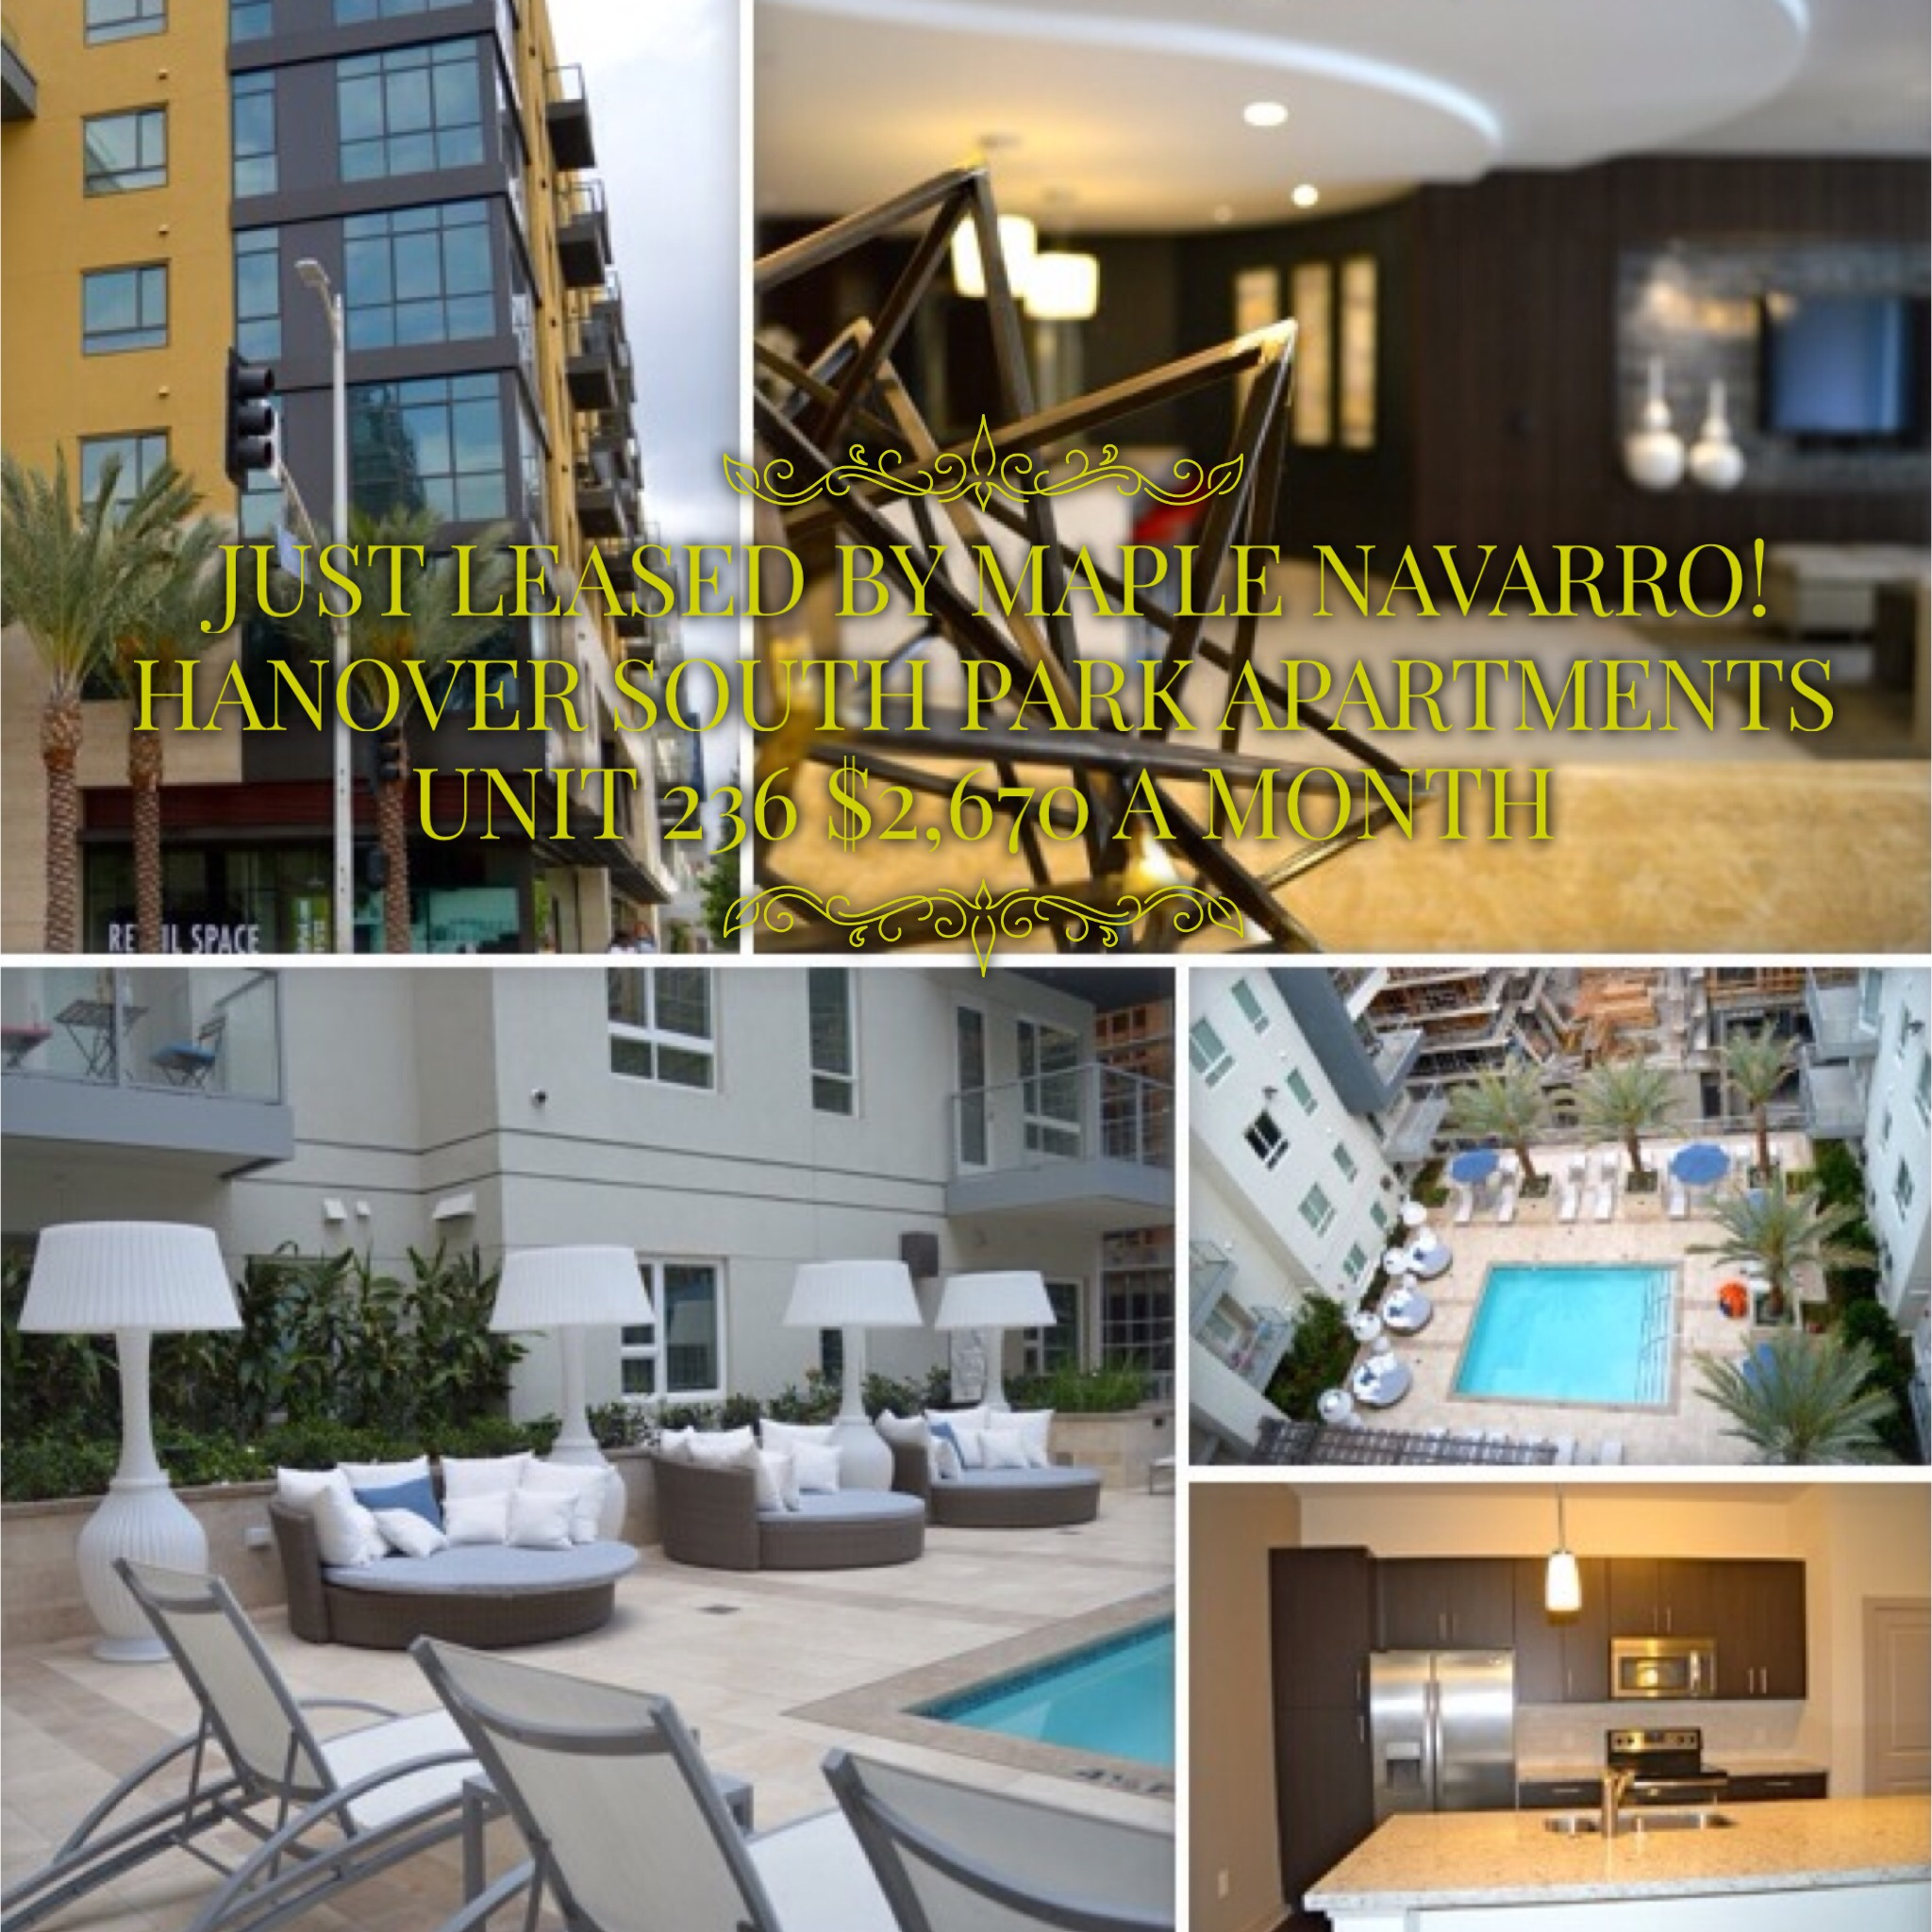 Hanover Apartments: Downtown Los Angeles Lofts And Condos For Sale